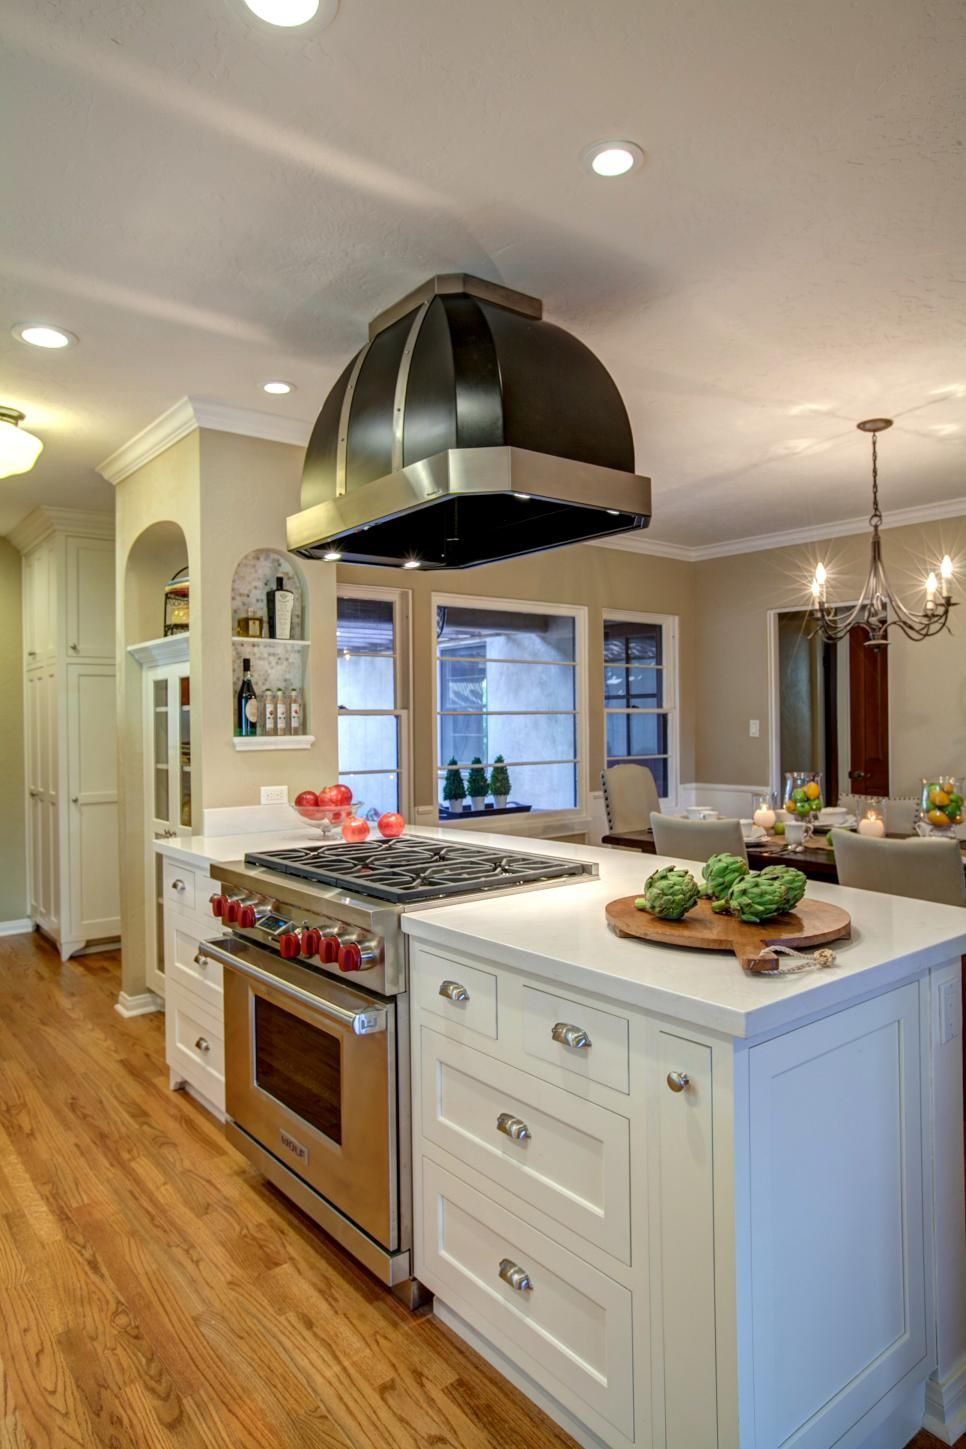 A stainless steel oven pairs with a retro black range hood